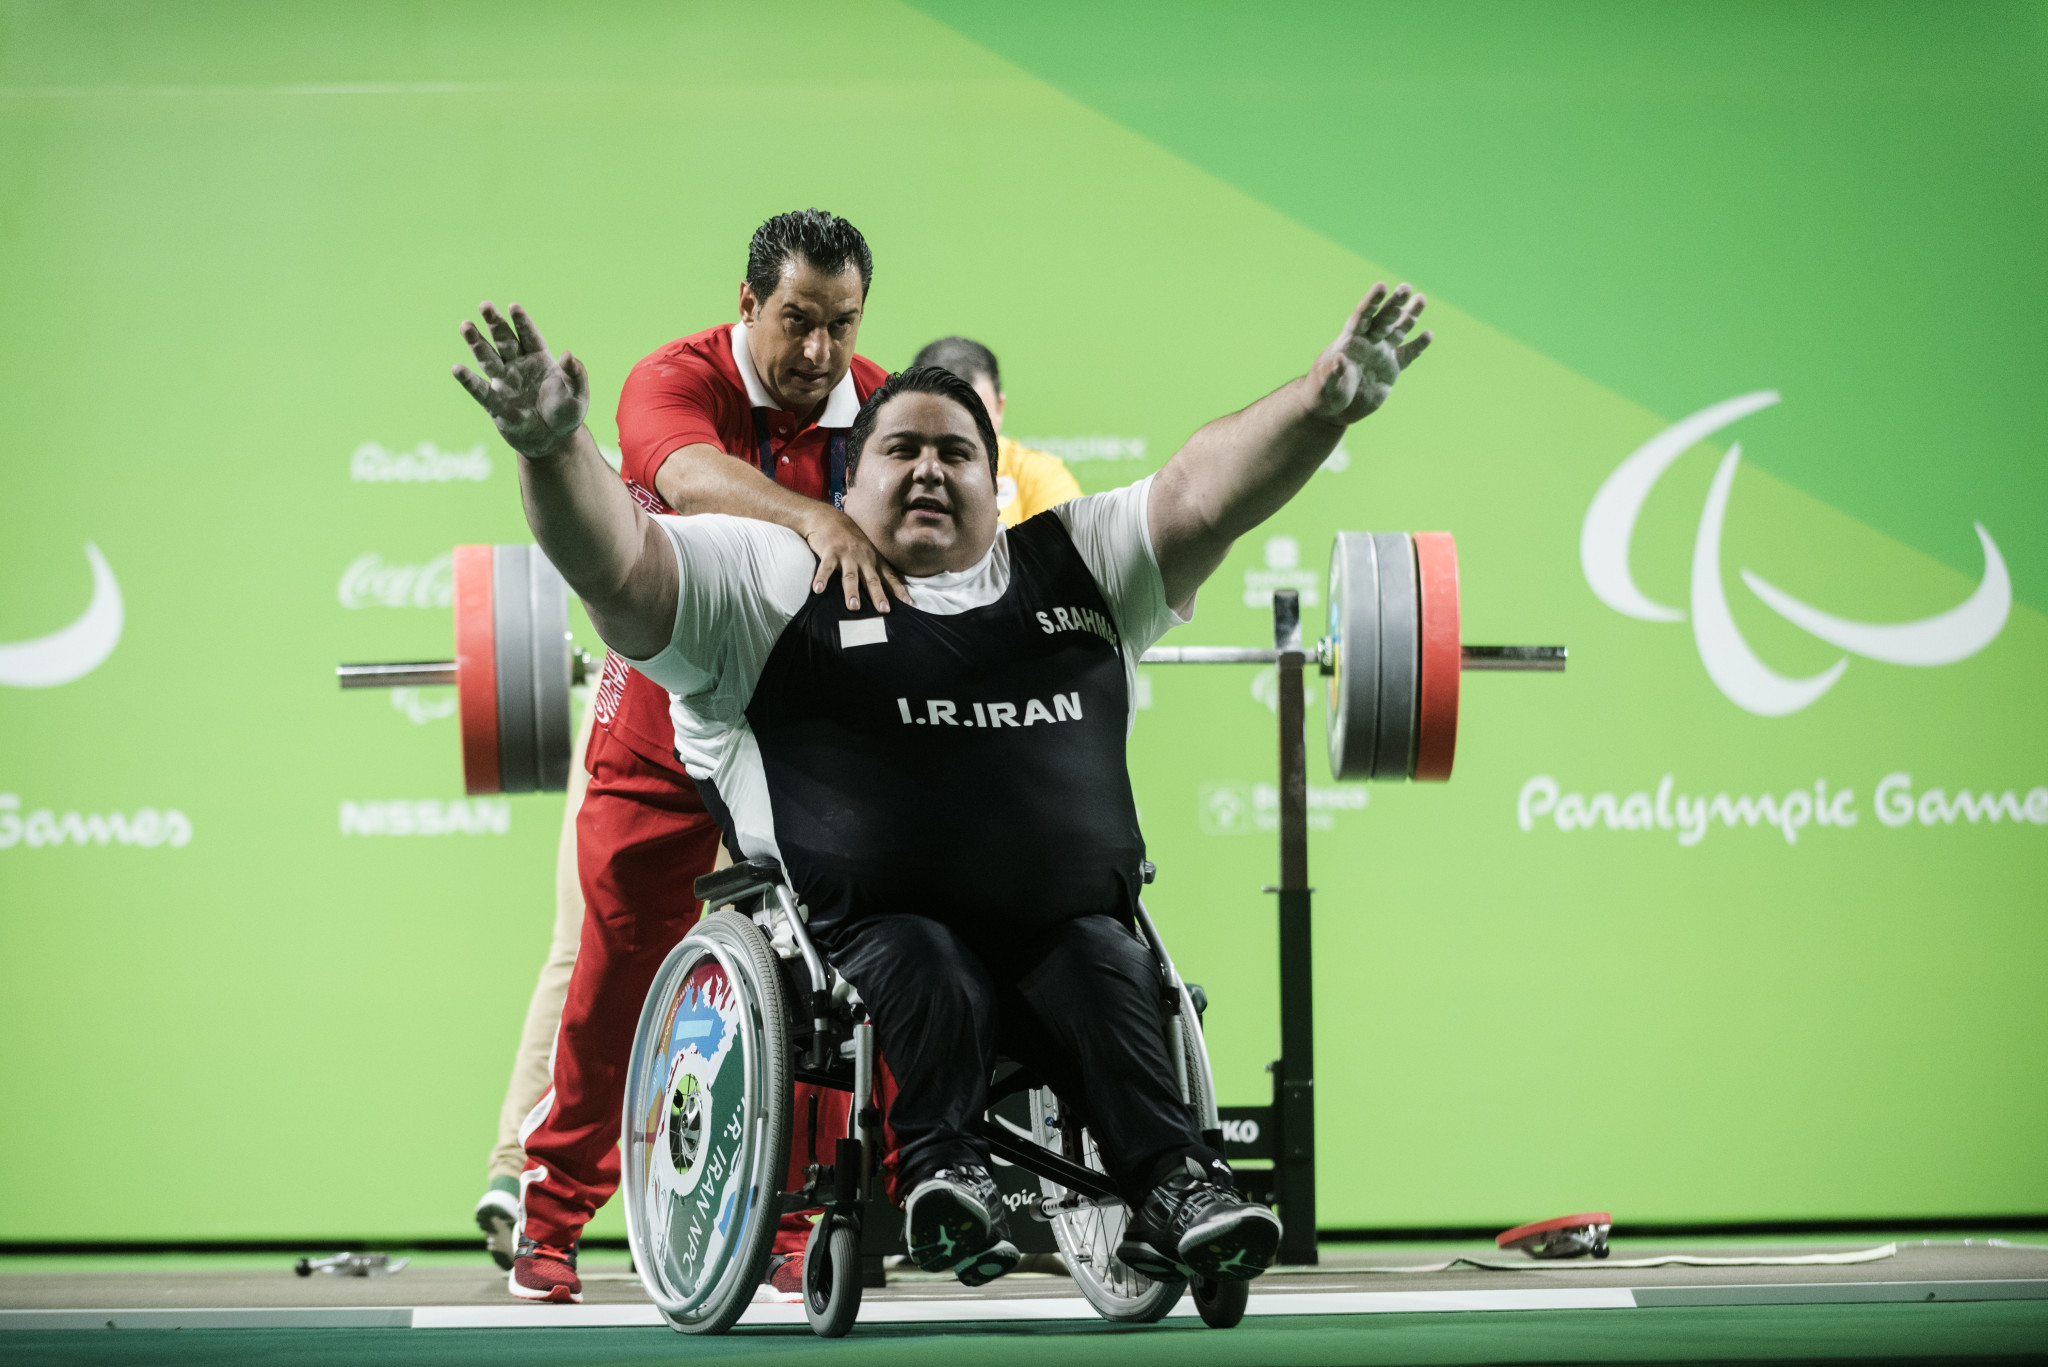 World's strongest Paralympian among field for Asia-Oceania Open Powerlifting Championships